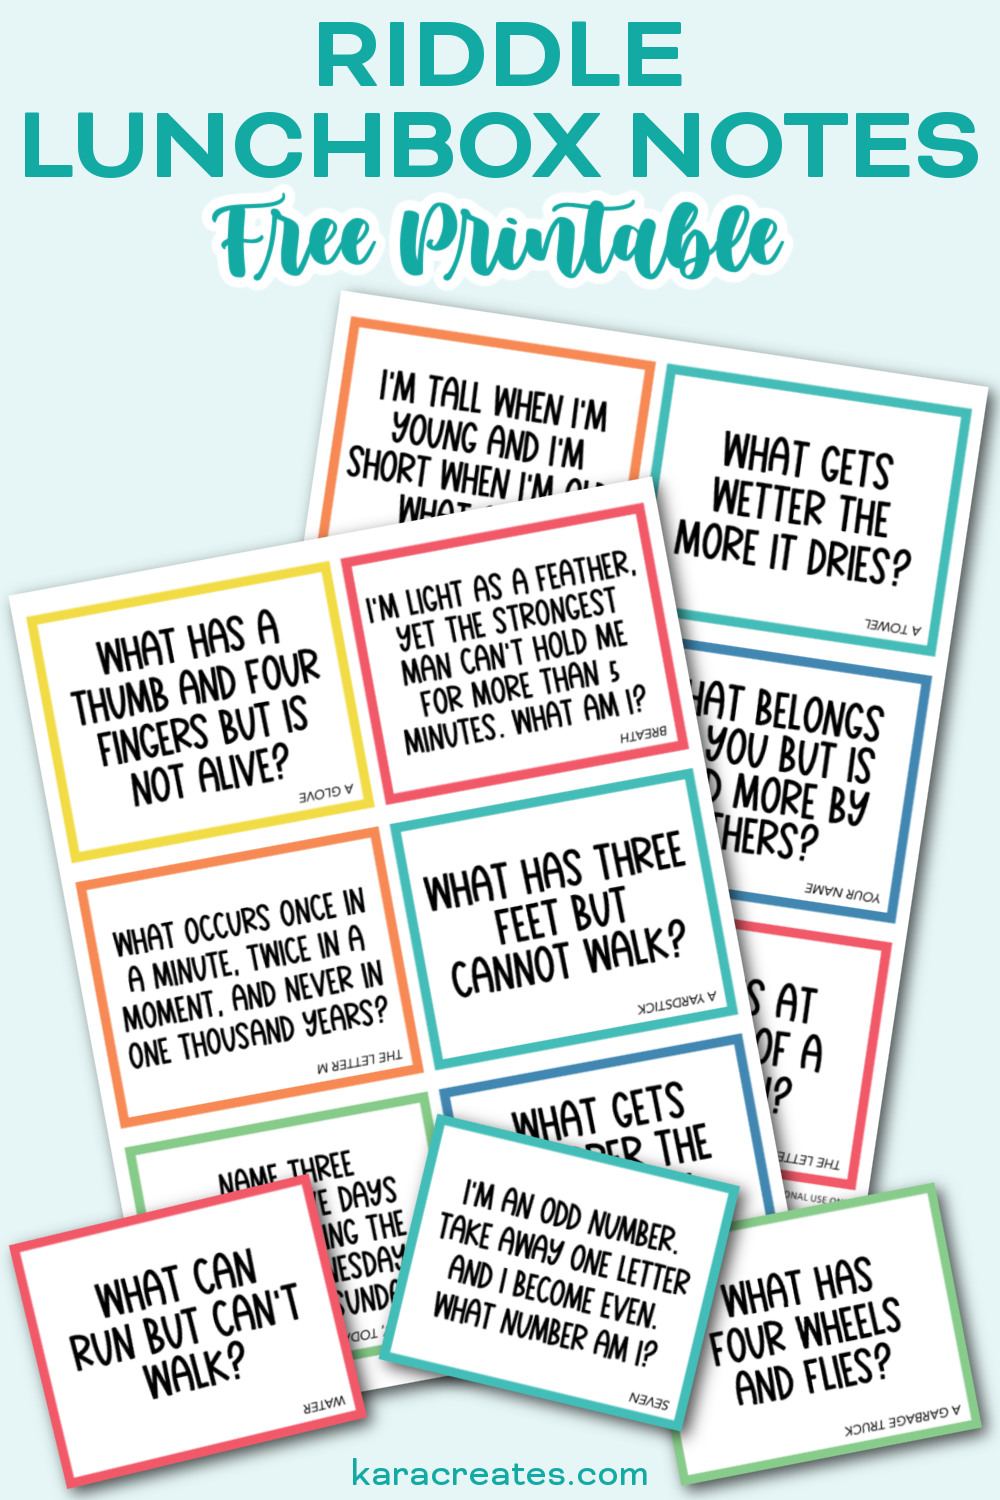 Riddle Lunchbox Notes Free Printable